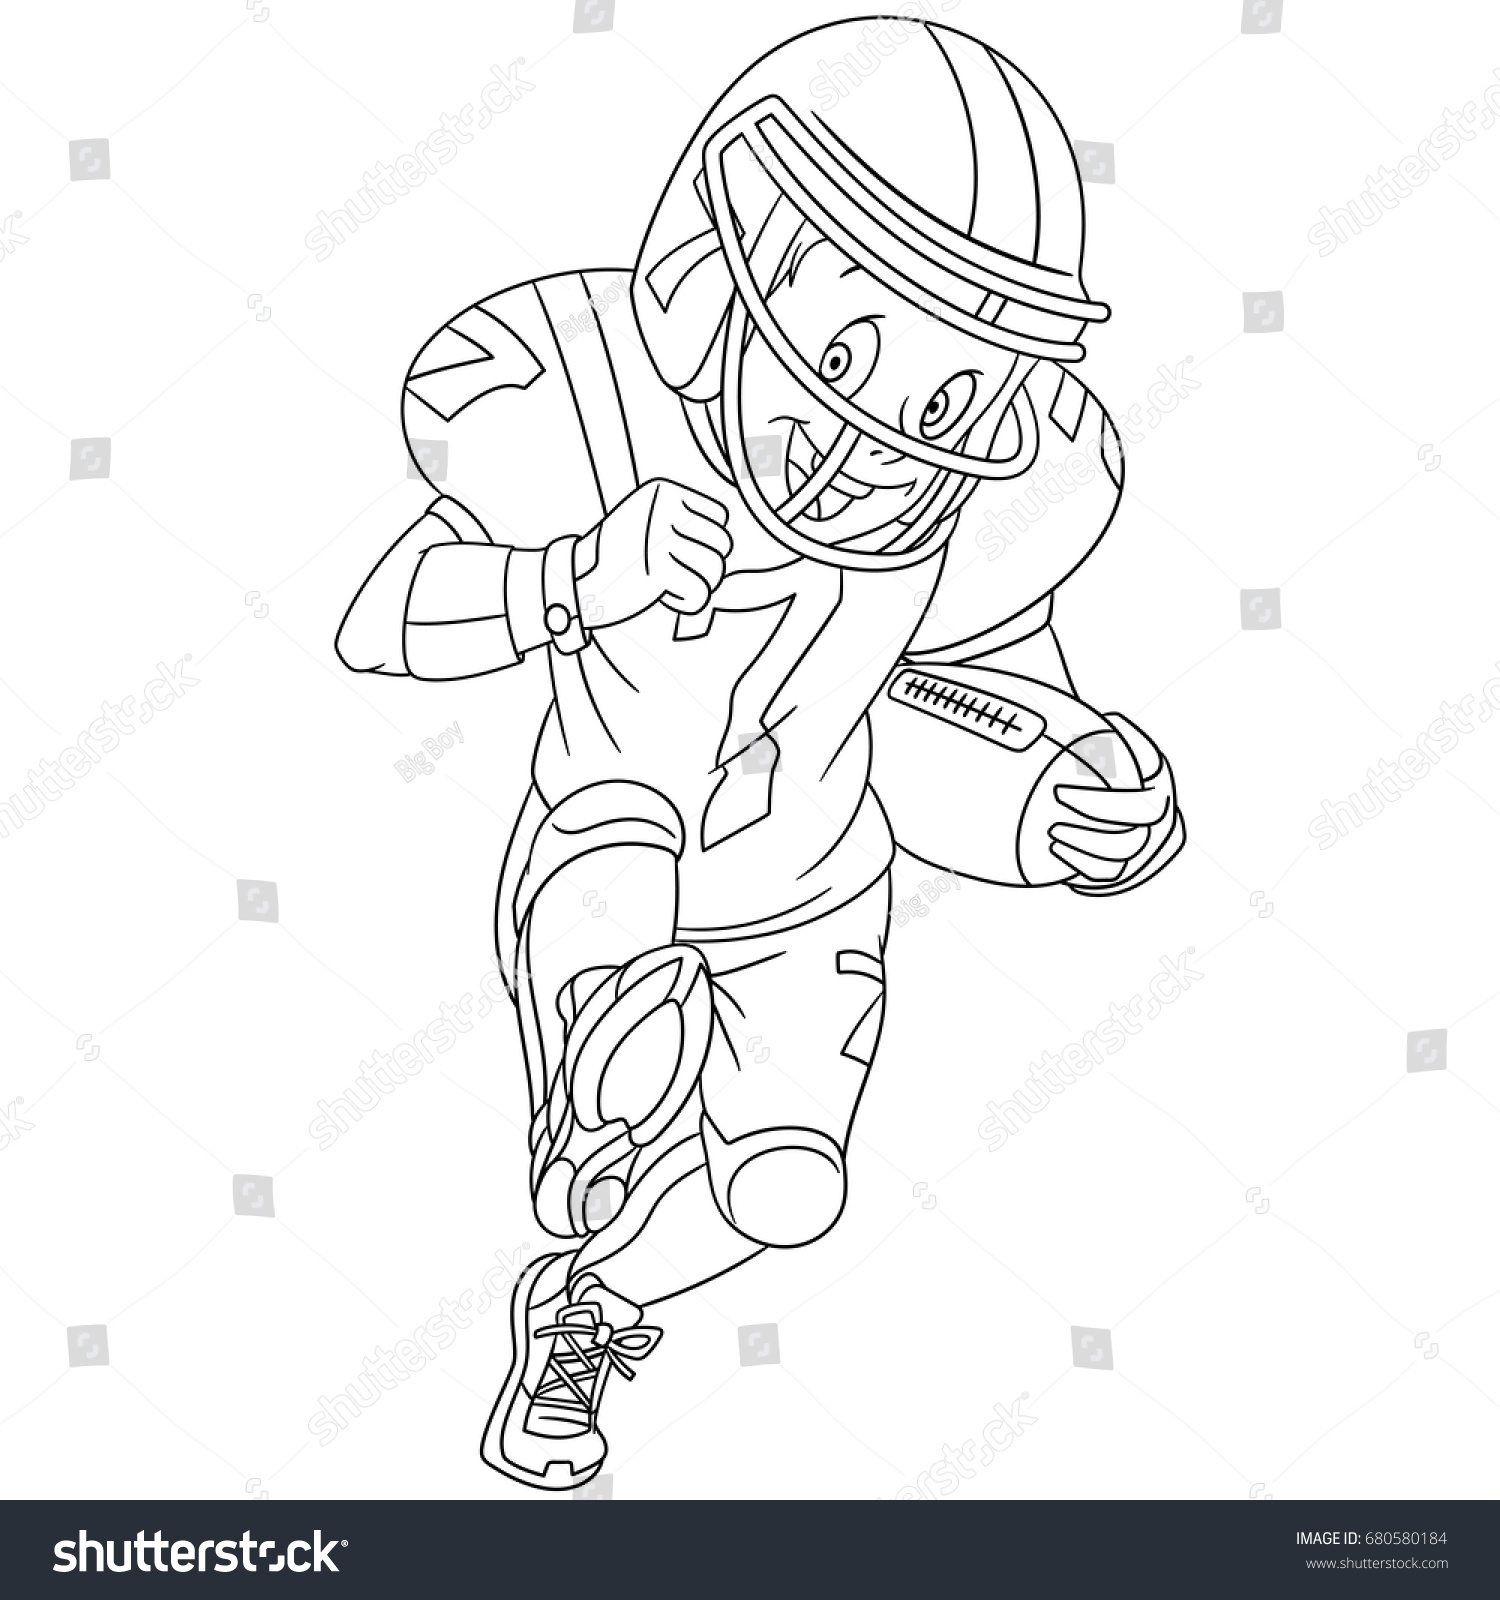 coloring page boy playing rugby american stock vector 680580184